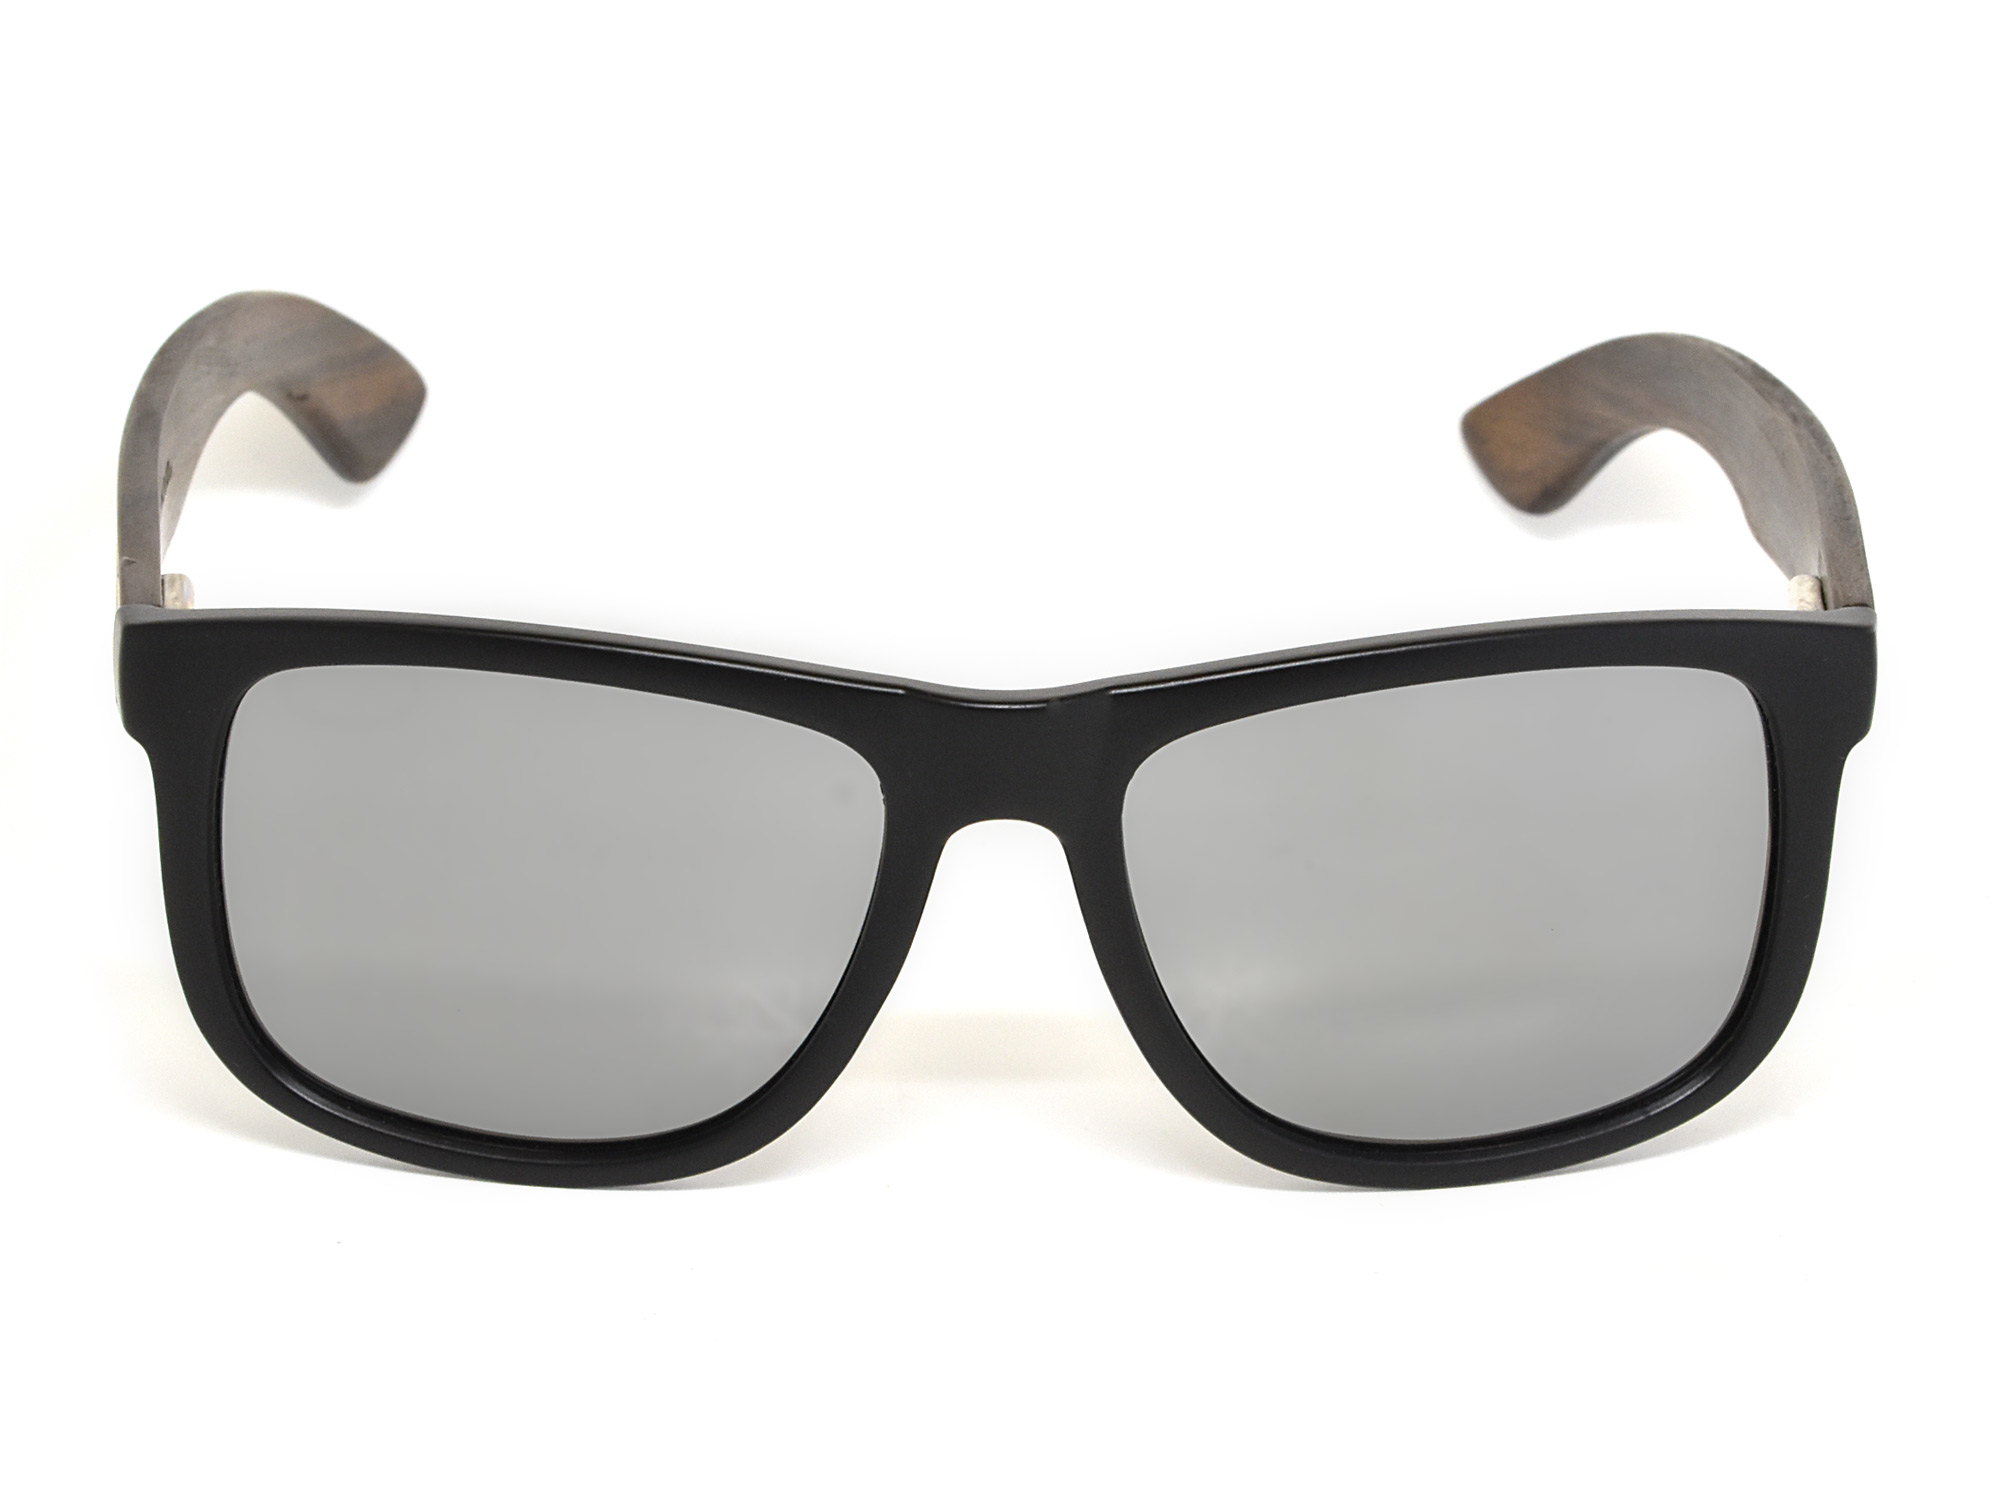 Square ebony wood sunglasses with silver mirrored polarized lenses front